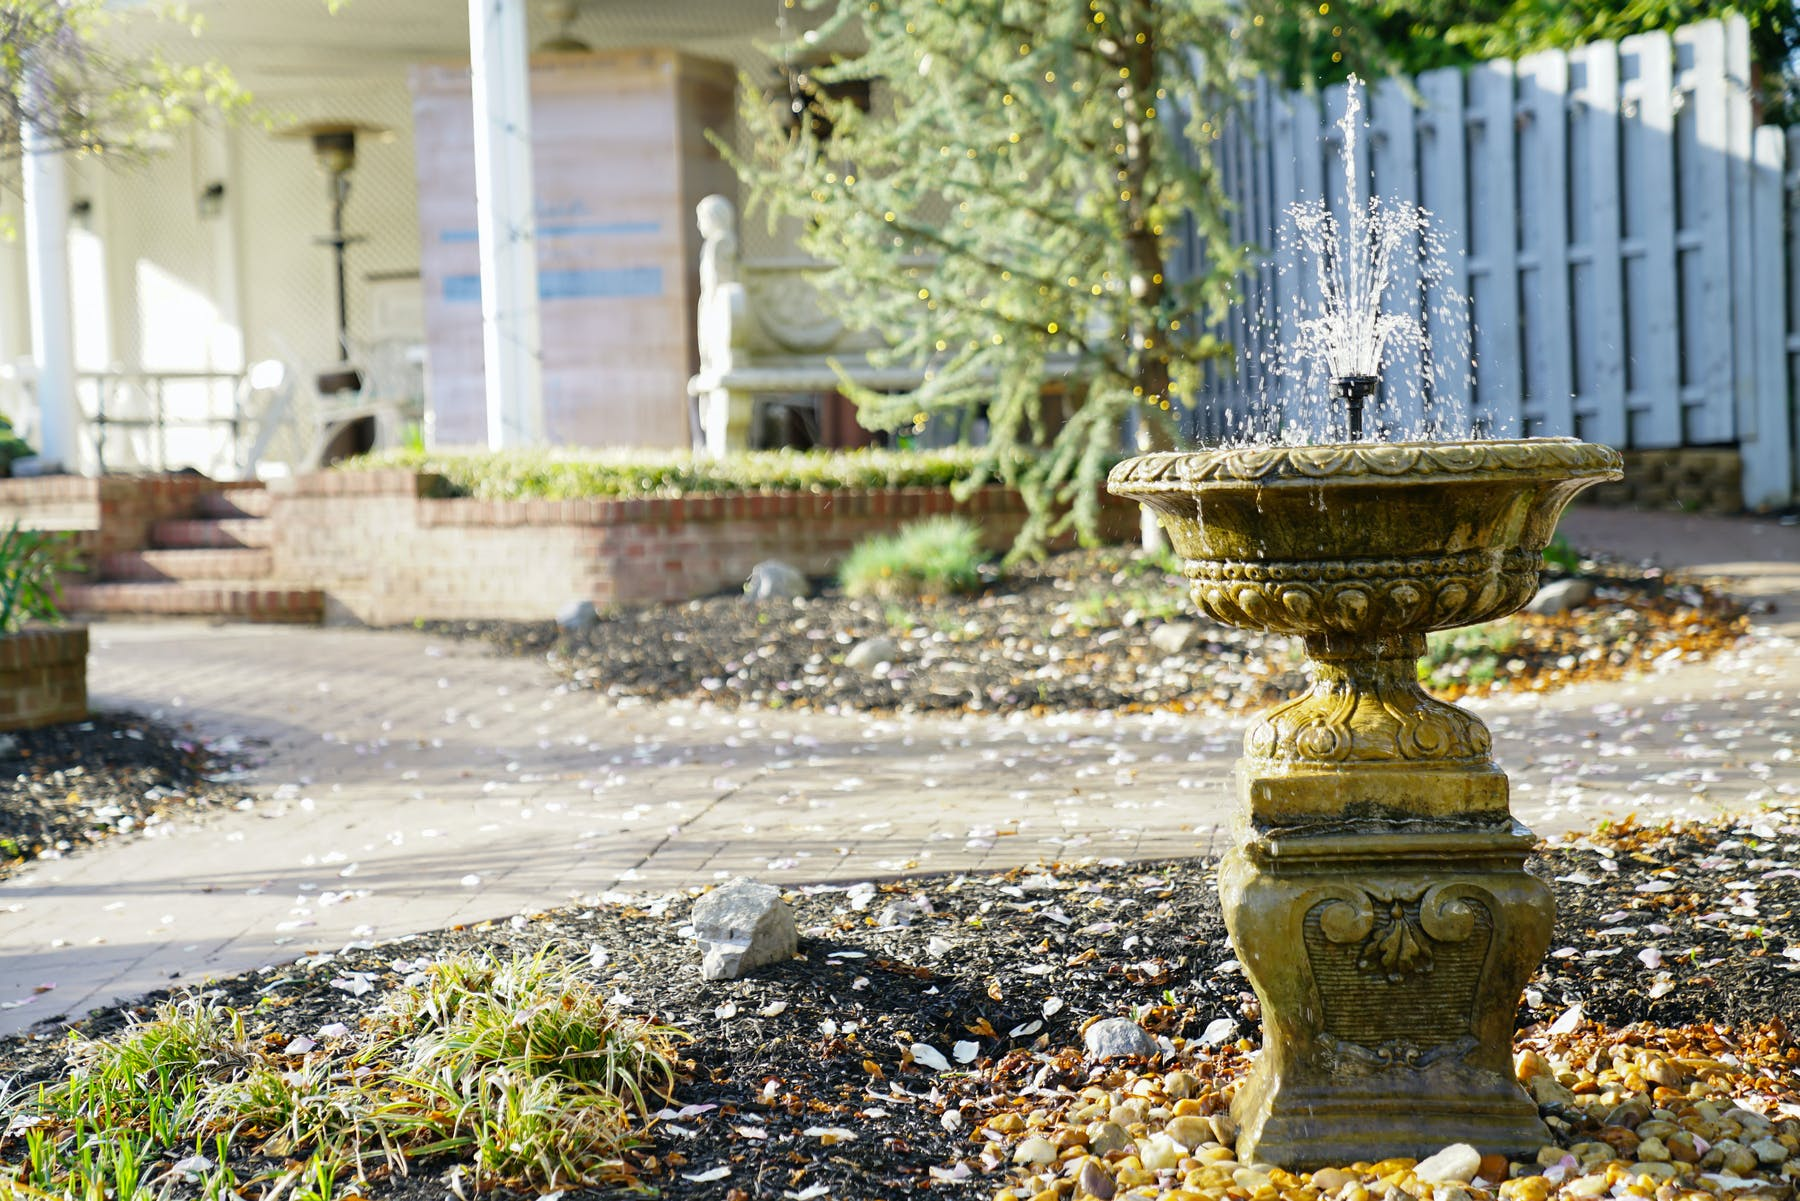 a fountain in front of a house garden